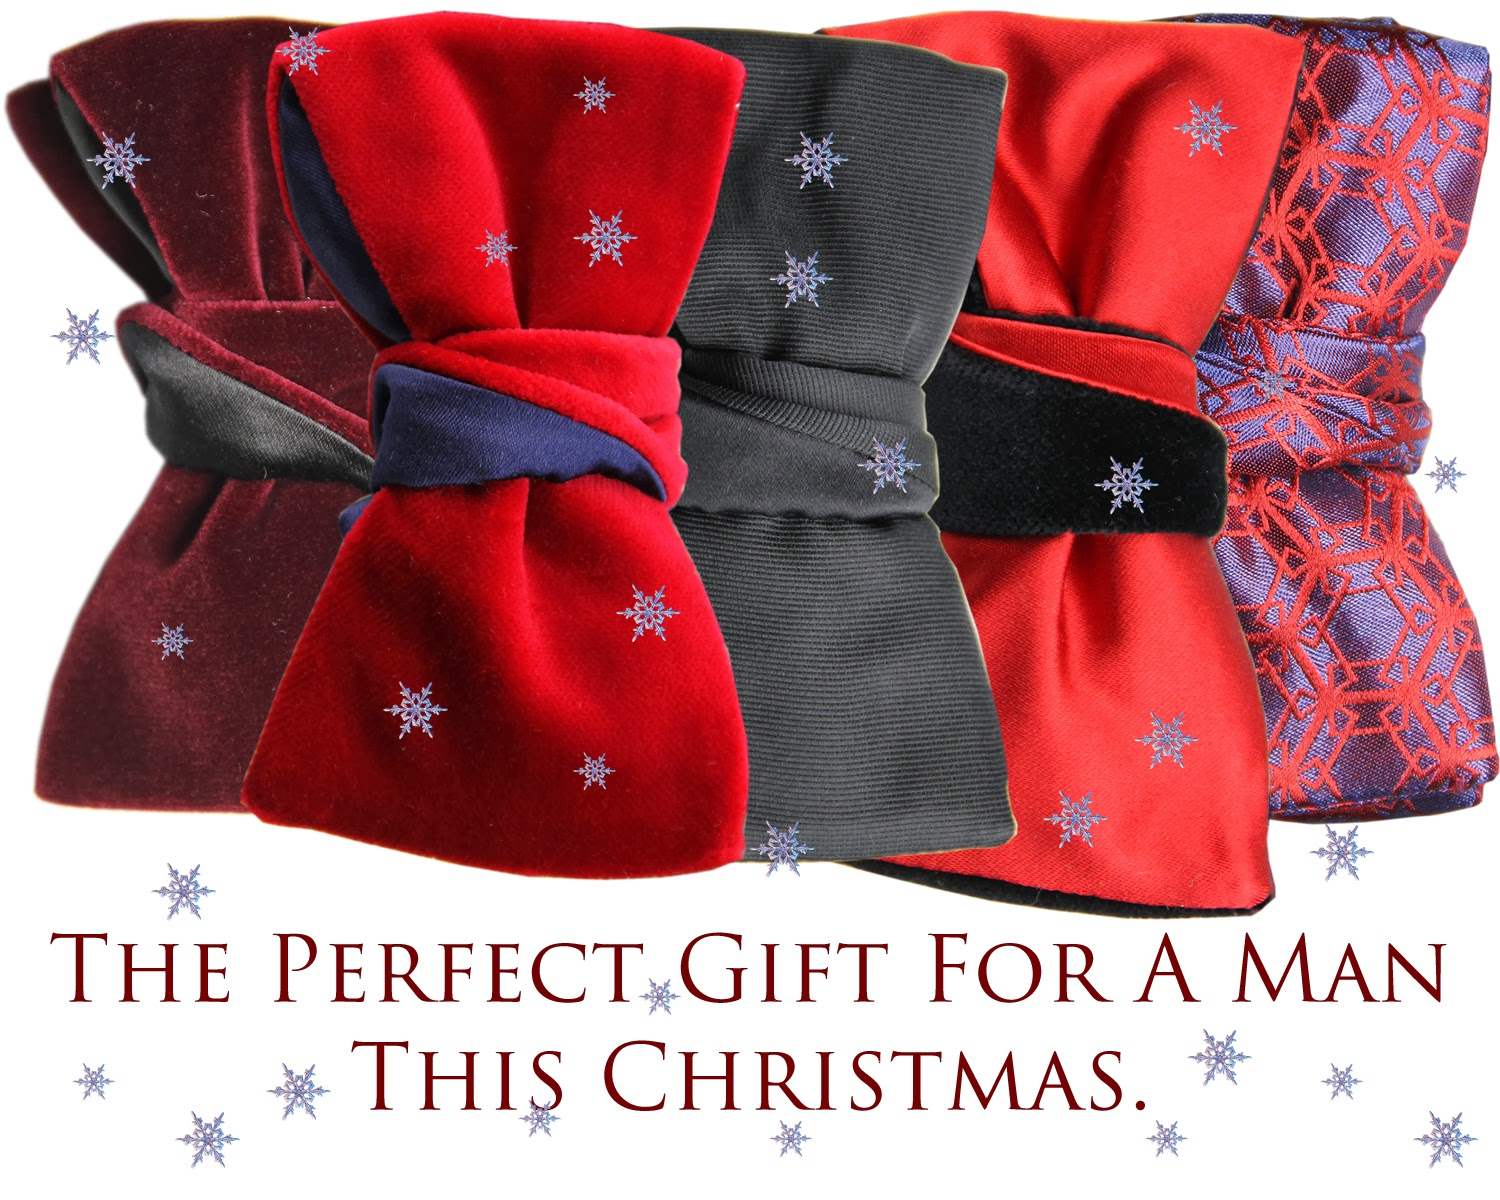 gift ideas for men this christmas the perfect gift for a man bow ties from le noeud papillon